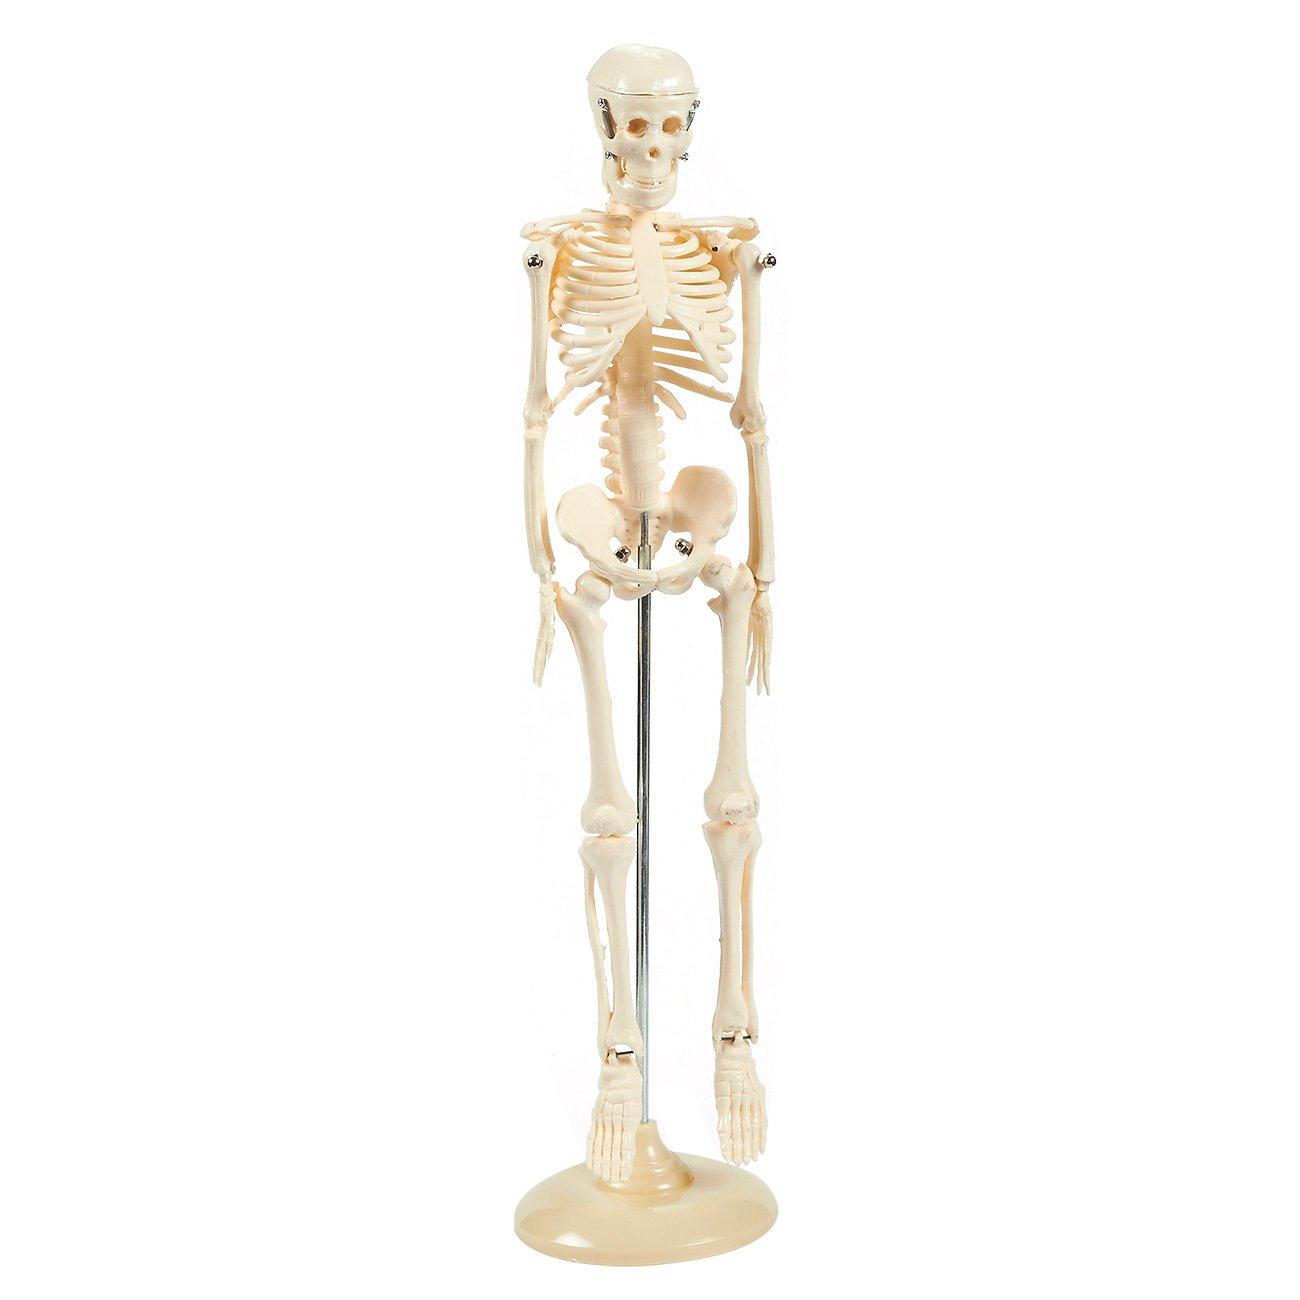 Human Skeleton Model - 17.5-Inch - Miniature Anatomical Skeleton for Tabletops, Base Mounted, Articulating, Ivory, 4 x 17.5 x 4 Inches Juvale